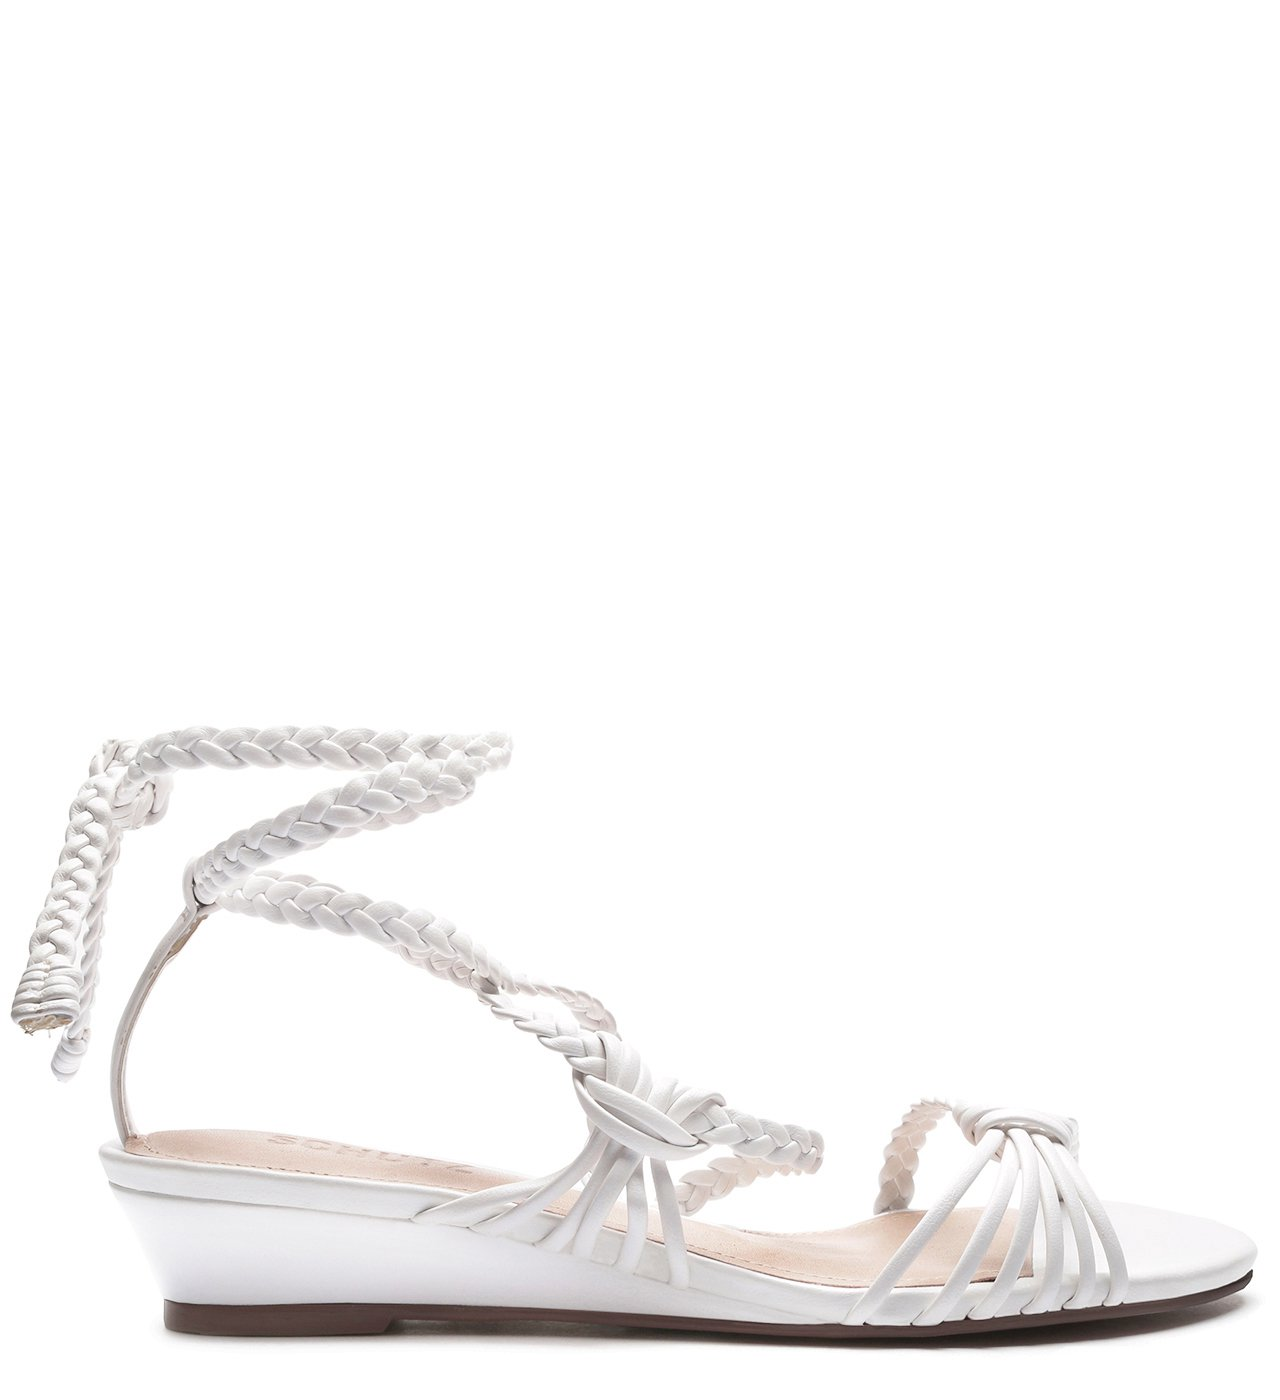 Sandália Anabela Low Strings White | Schutz